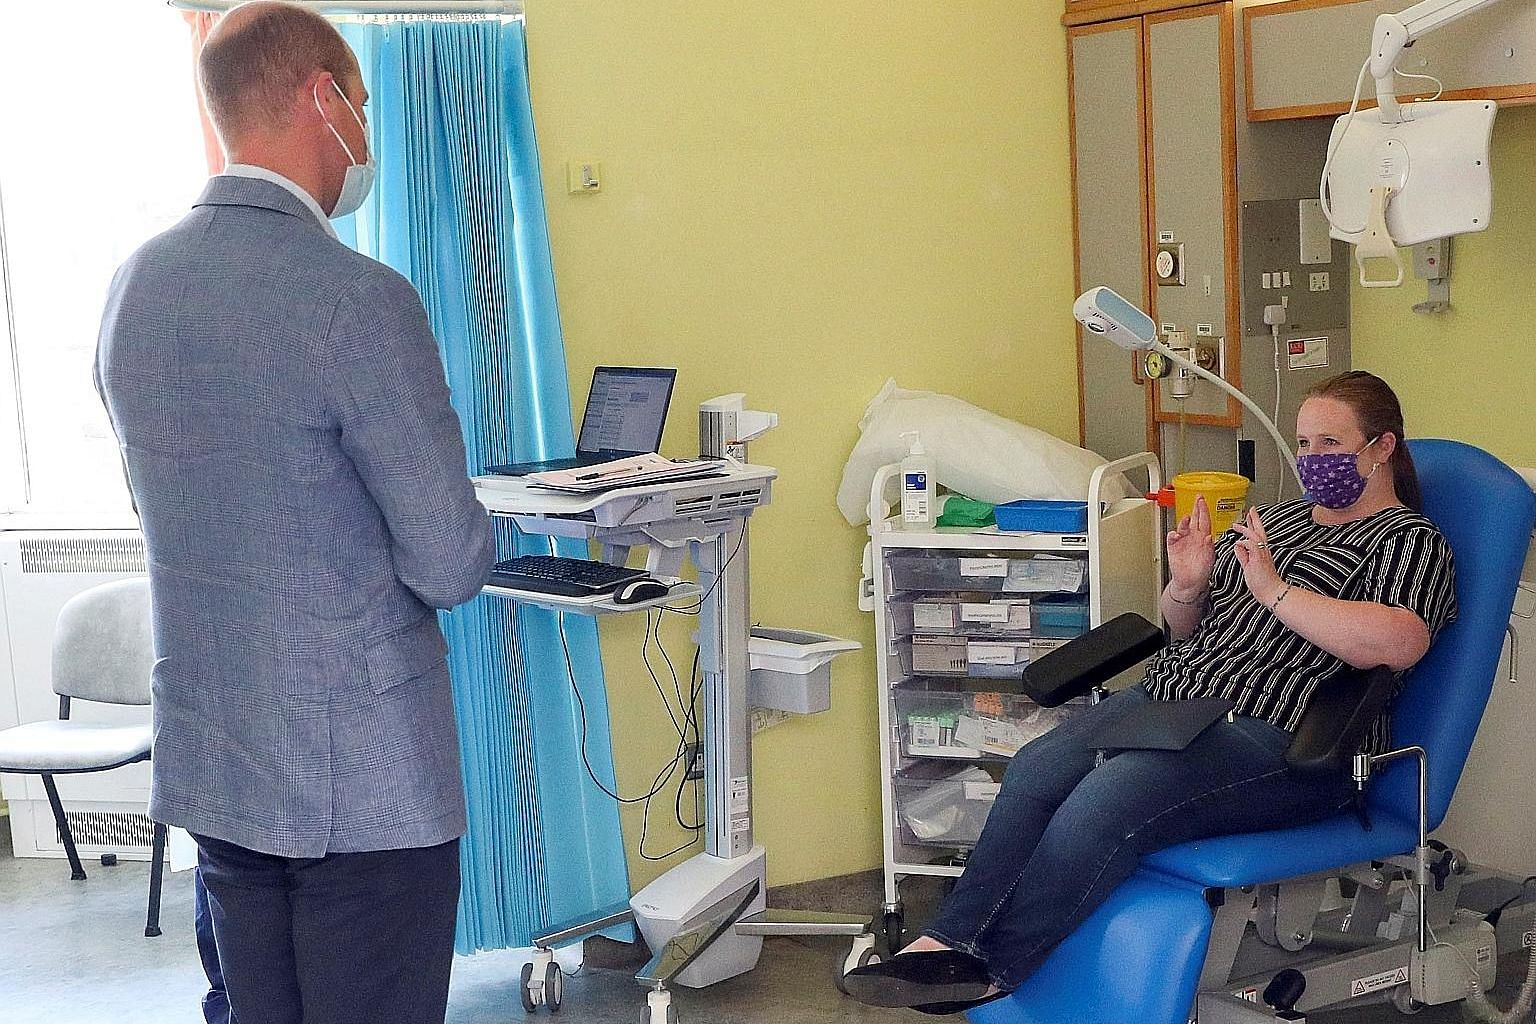 Britain's Prince William talking to a patient participating in a Covid-19 vaccine trial during a visit to the Oxford Vaccine Group's facility at Churchill Hospital in Oxford in June. British drugmaker AstraZeneca's vaccine, which the company is devel